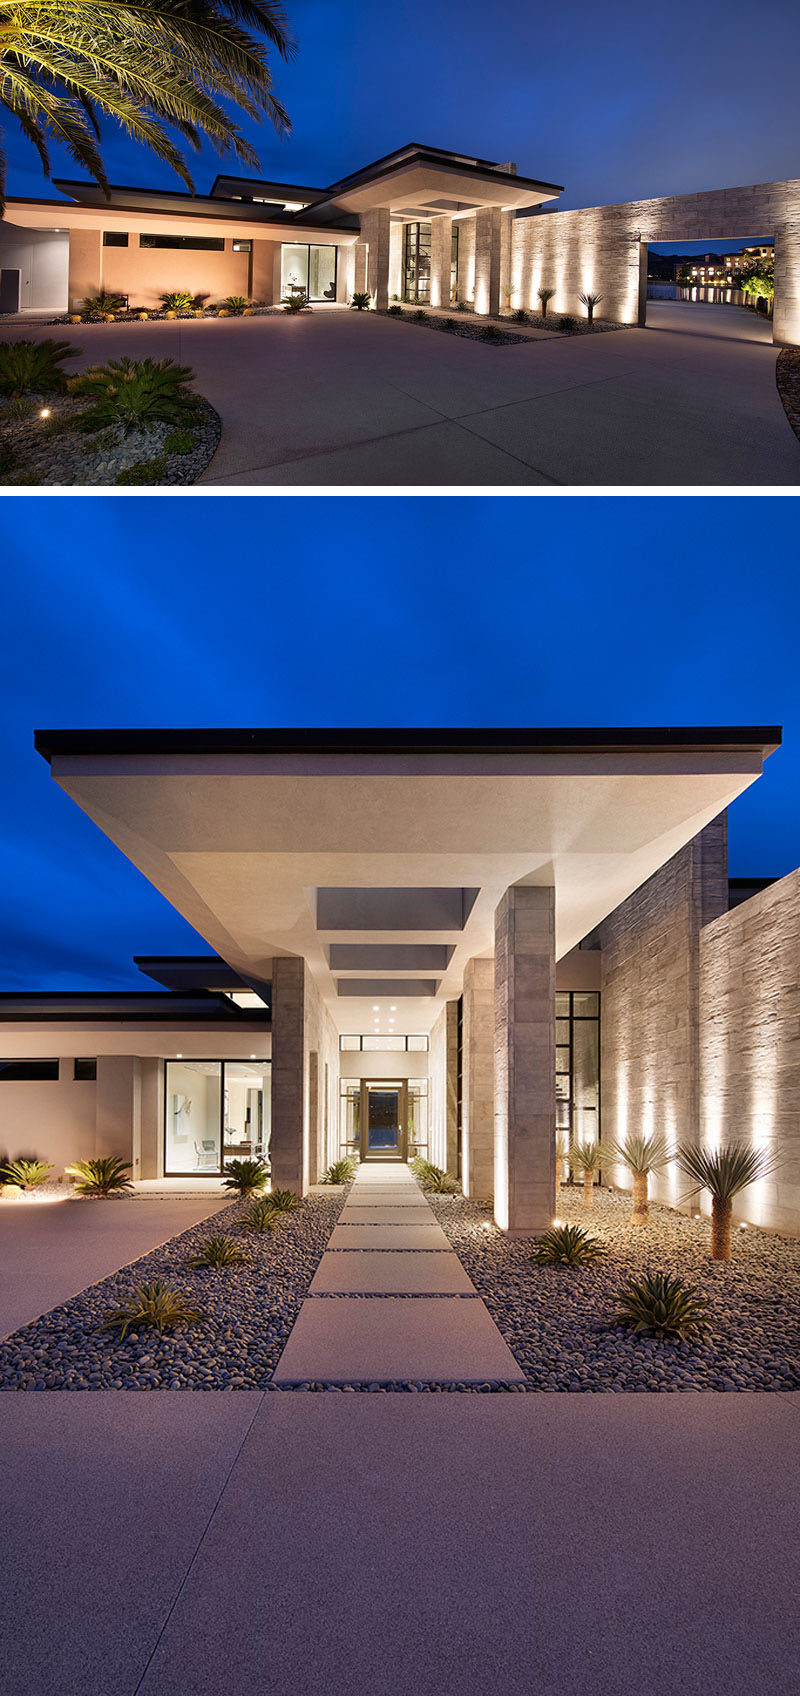 Setback from the road, the modern house has a covered entry with uplighting, and an oversized glass front door. #ModernHouse #Landscaping #Architecture